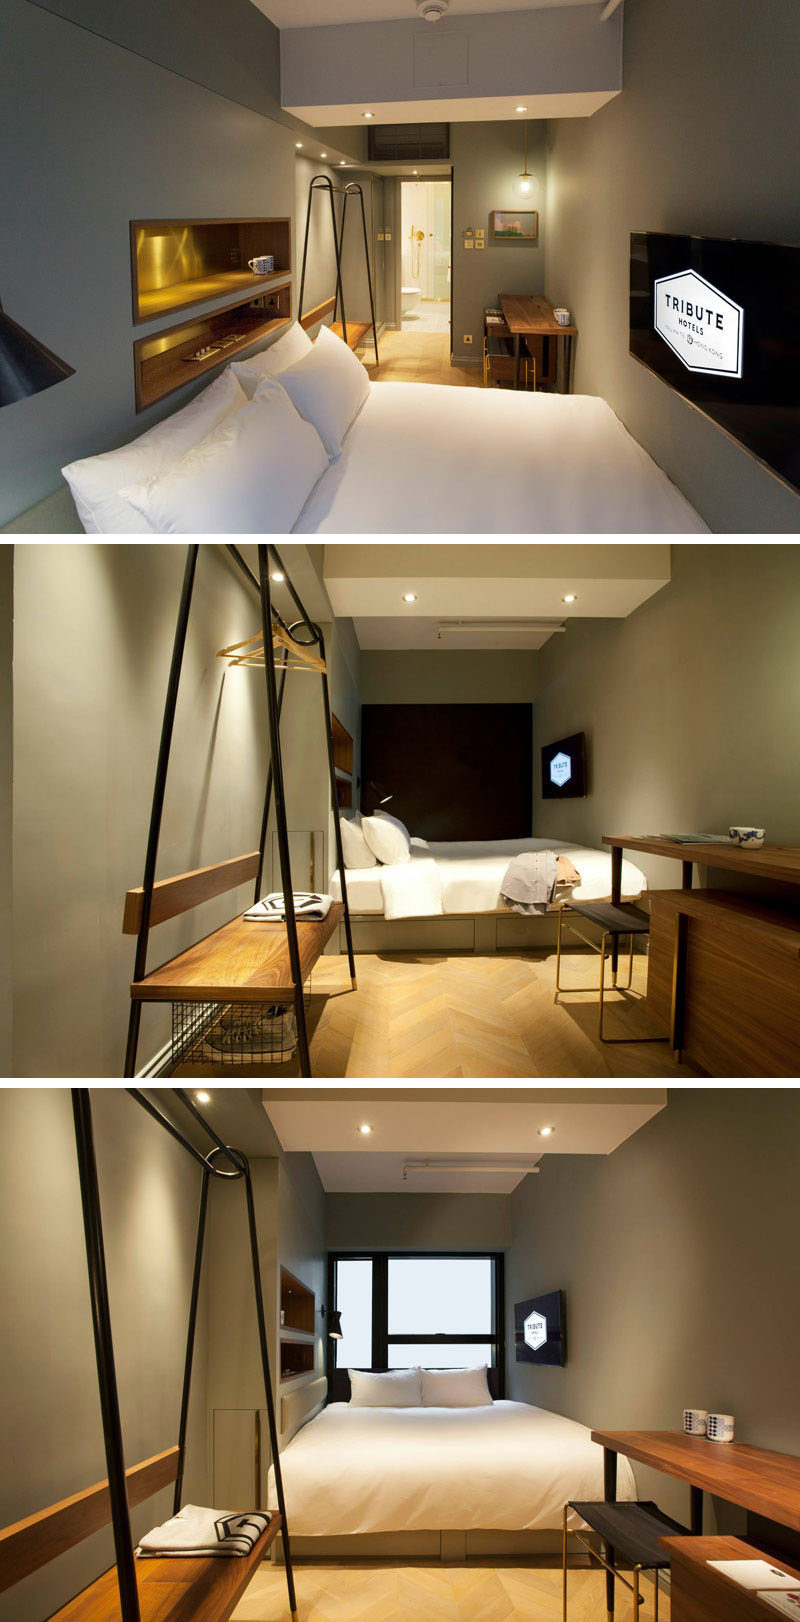 8 small hotel rooms that maximize their tiny space | contemporist